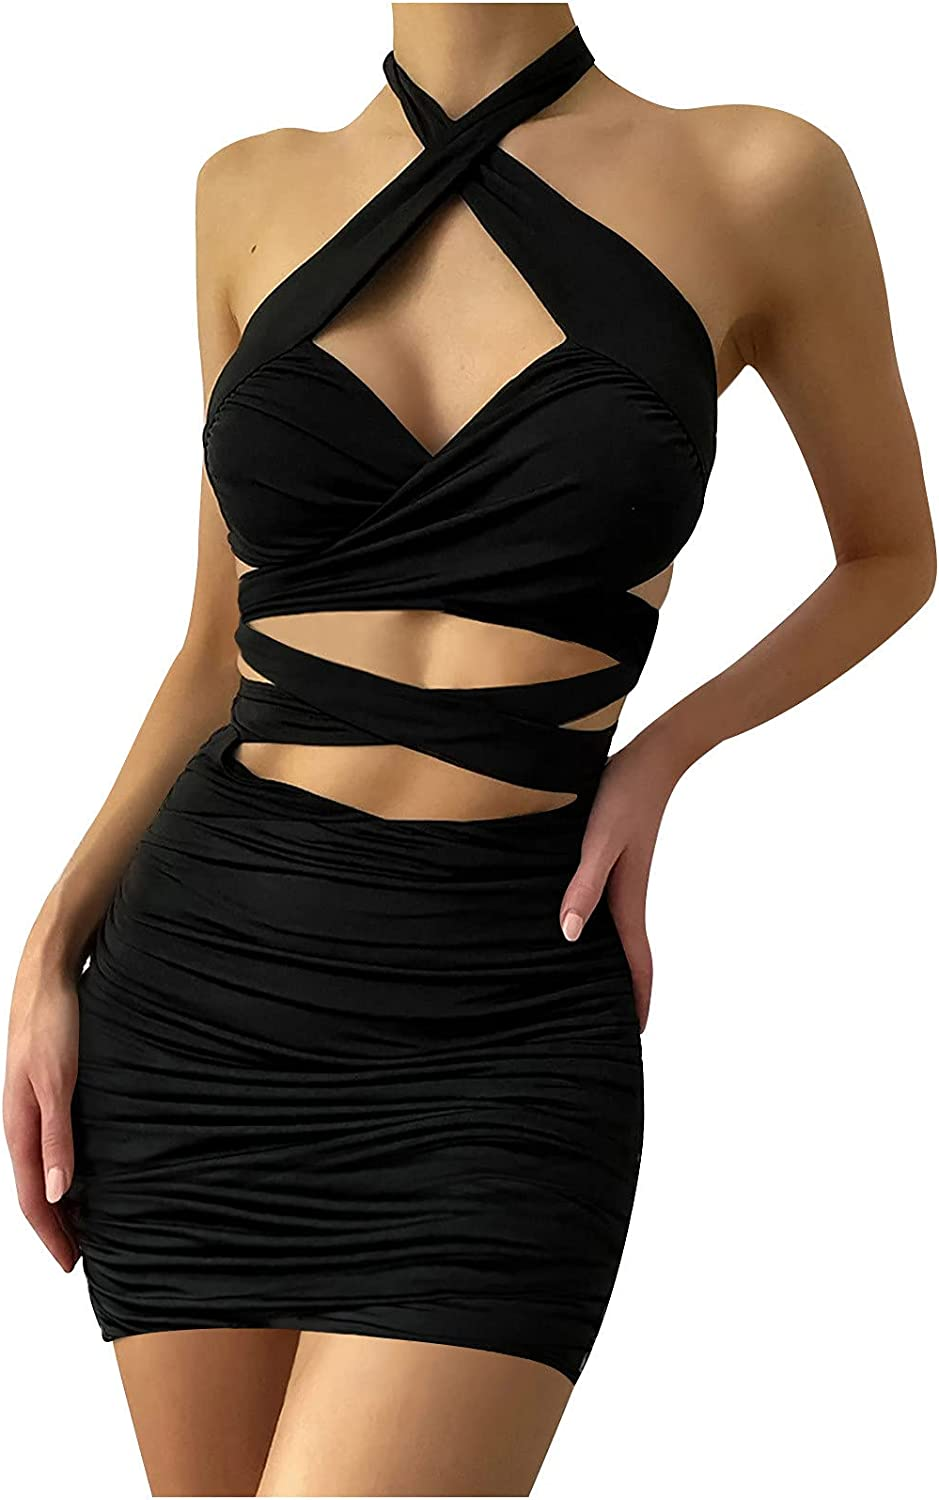 Women Halter Dress Backless Bodycon Mini Dress Criss Cross Hollow Out Y2k 90s Vintage Sexy Dress for Club Night Out